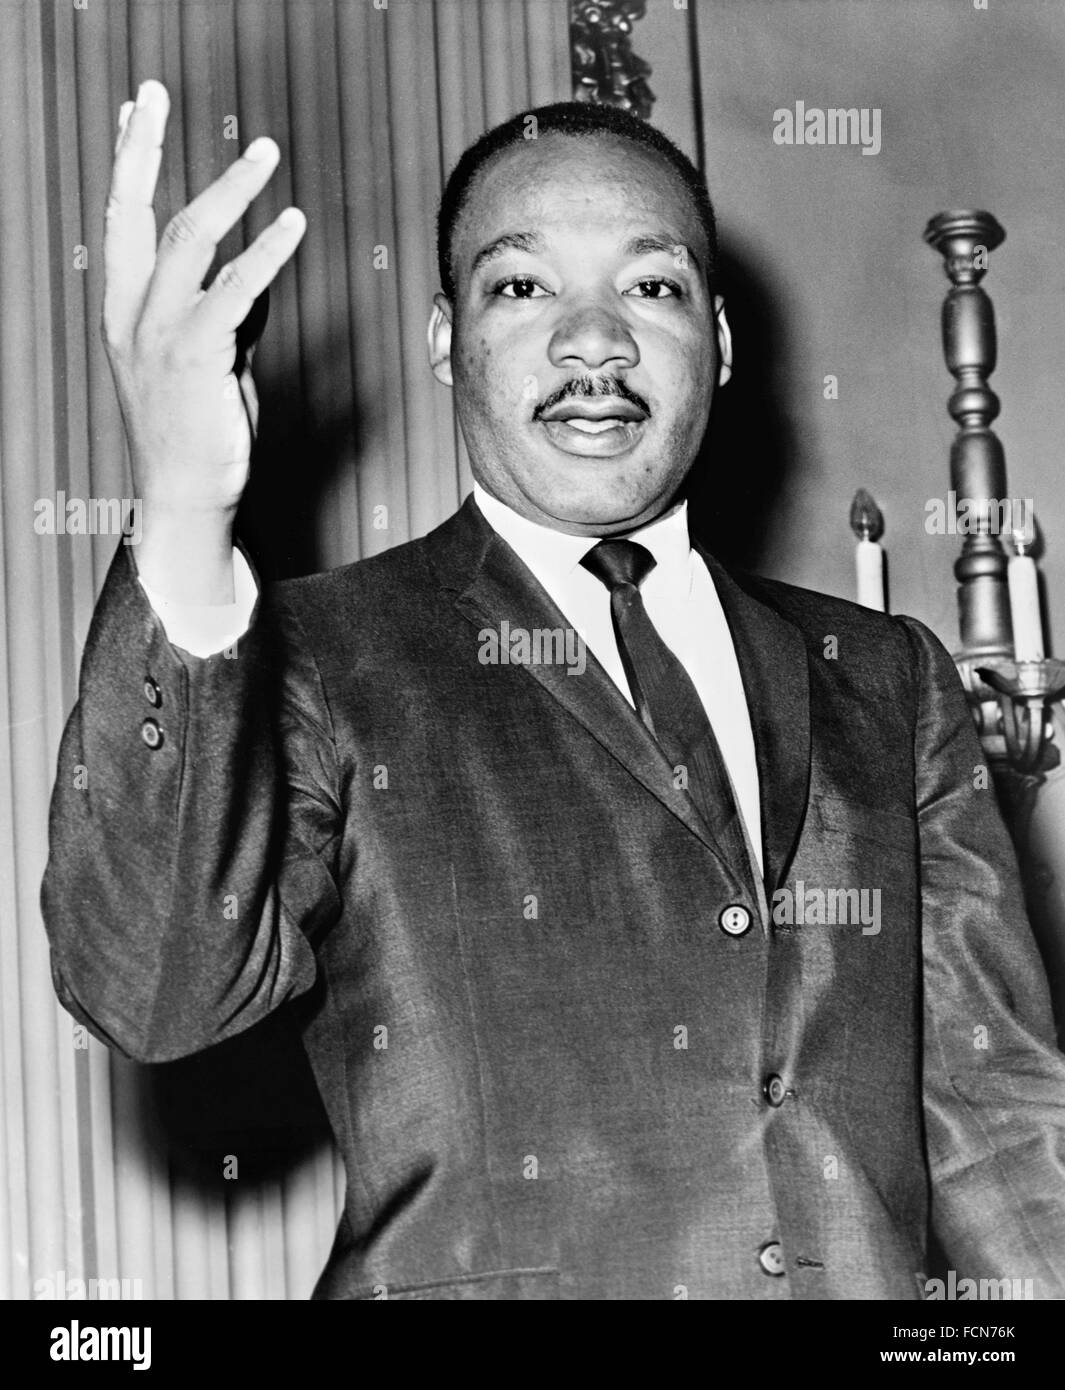 Dr Martin Luther King Jr in 1964 - Stock Image